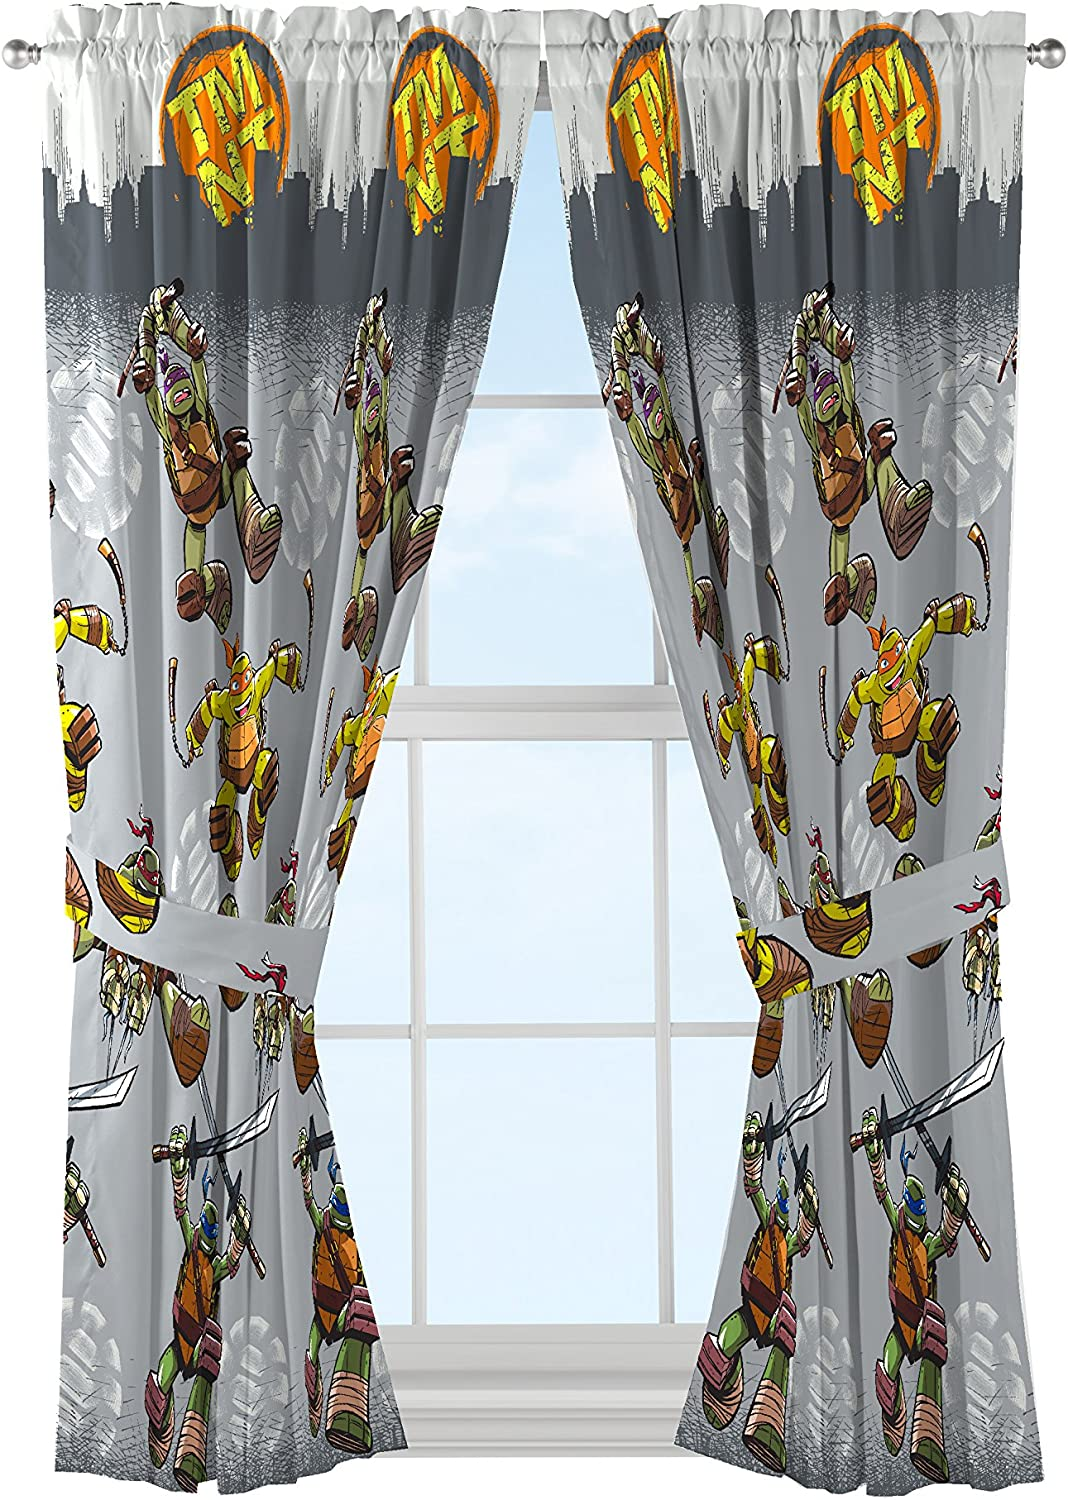 Nickelodeon Teenage Mutant Ninja Turtles Cross Hatching Gray Curtains/Drapes 4 Piece Set (2 Panels, 2 Tiebacks)